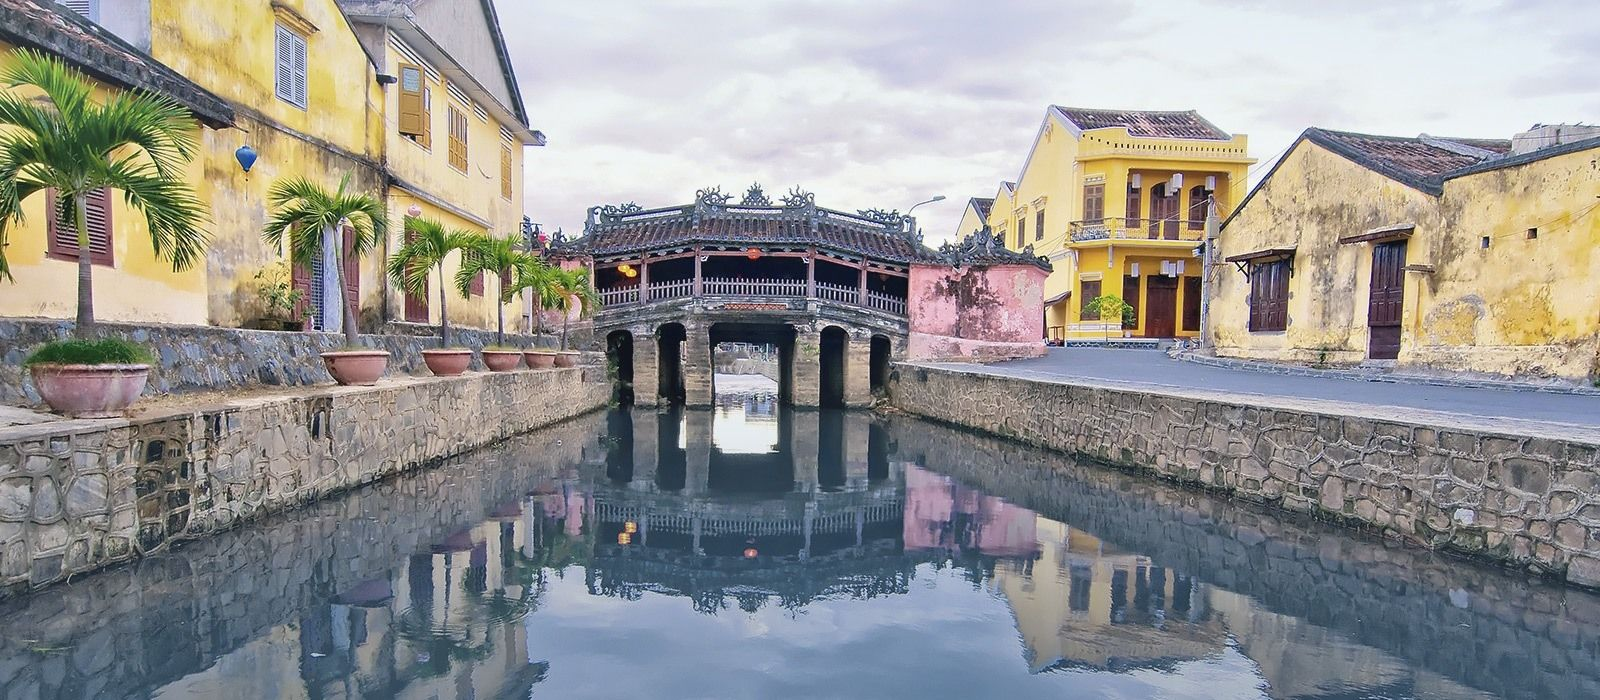 Destination Hoi An Vietnam